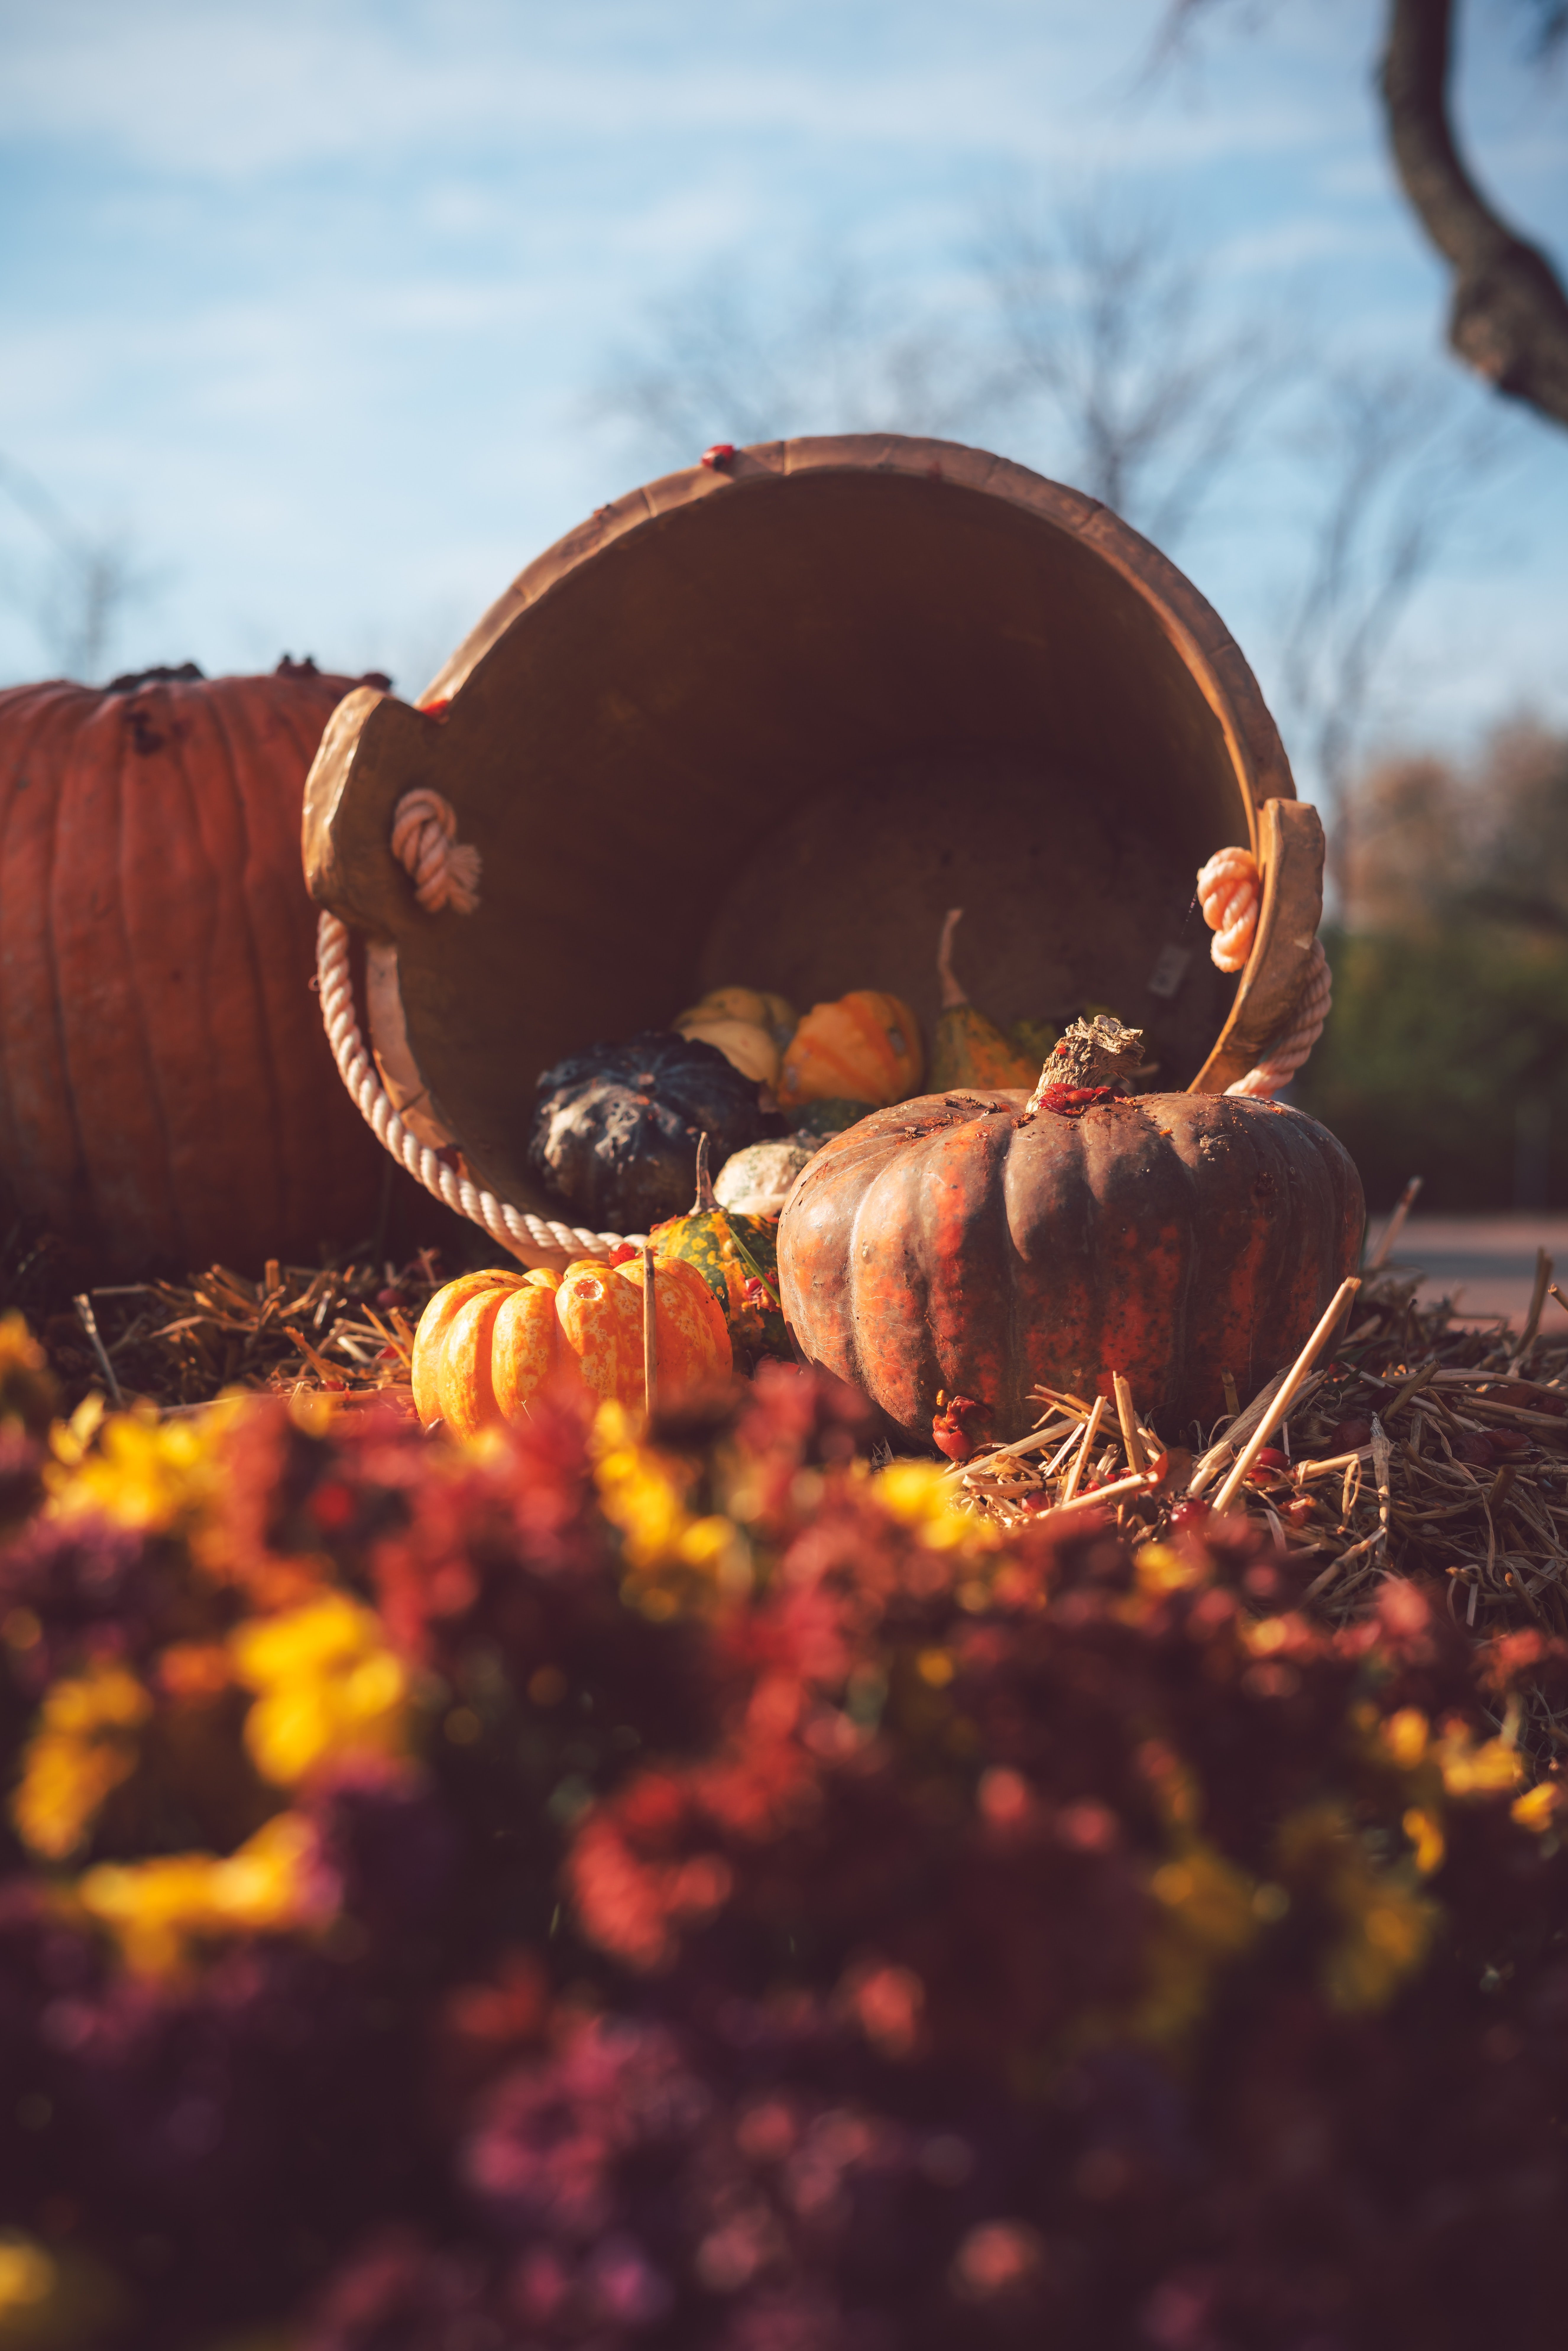 54669 download wallpaper Autumn, Pumpkin, Miscellanea, Miscellaneous, Basket, Harvest, Straw screensavers and pictures for free